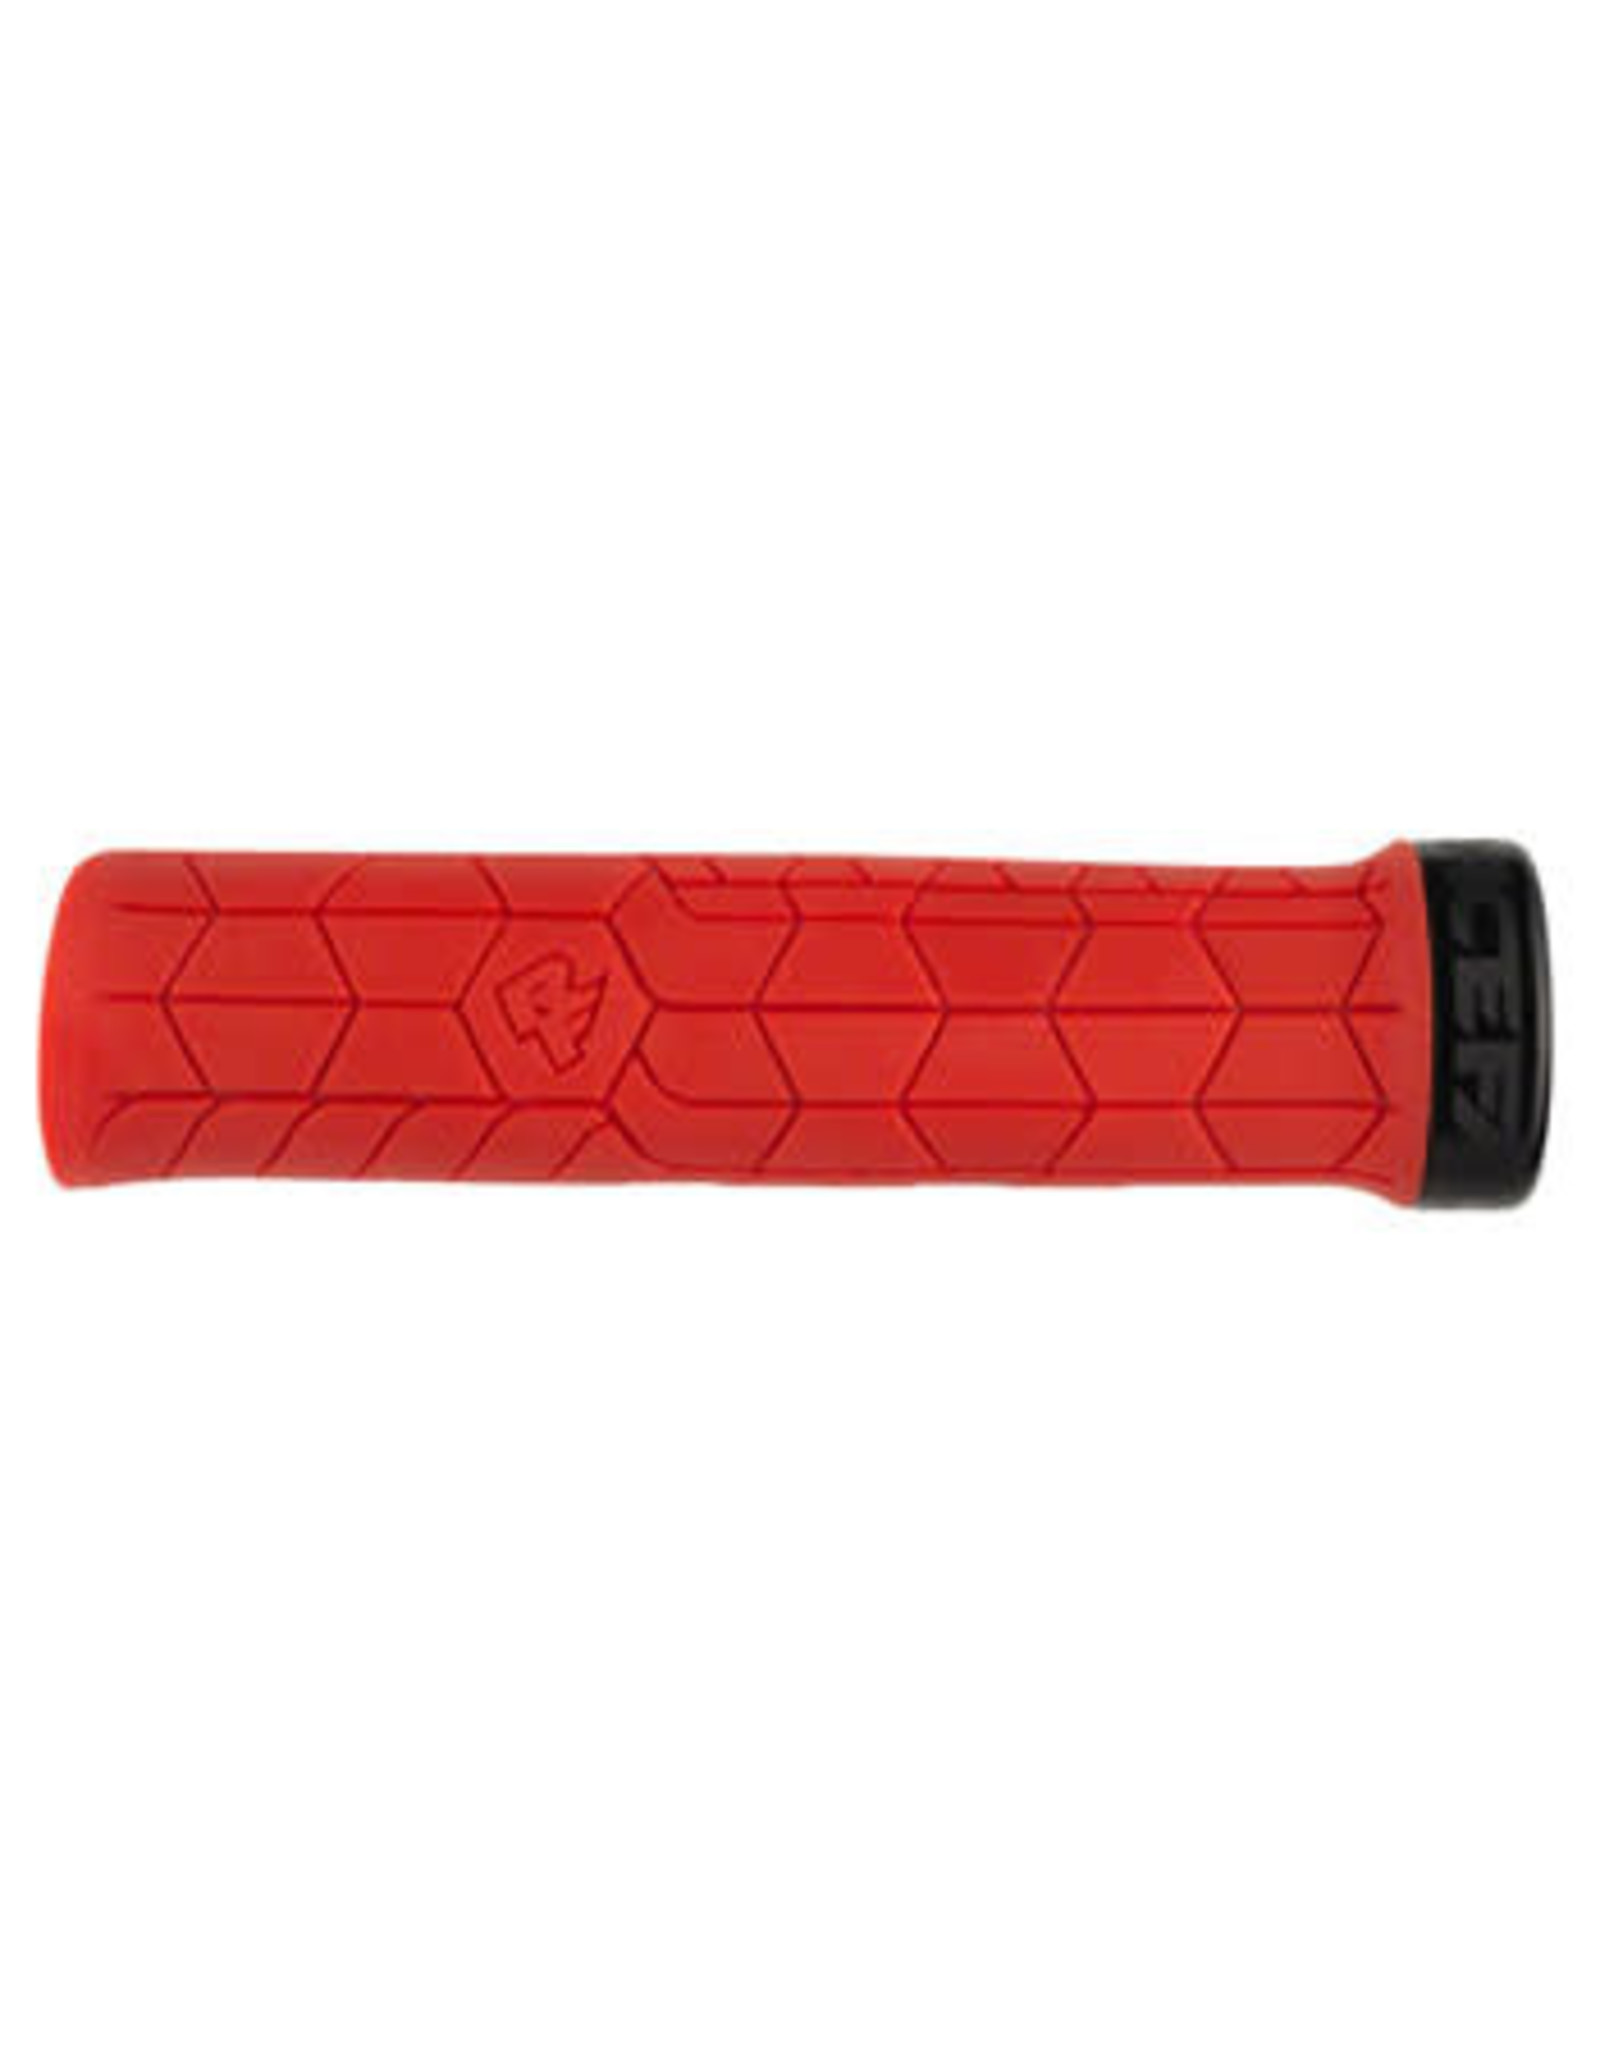 RaceFace RaceFace Getta Grips - Red, Lock-On, 33mm